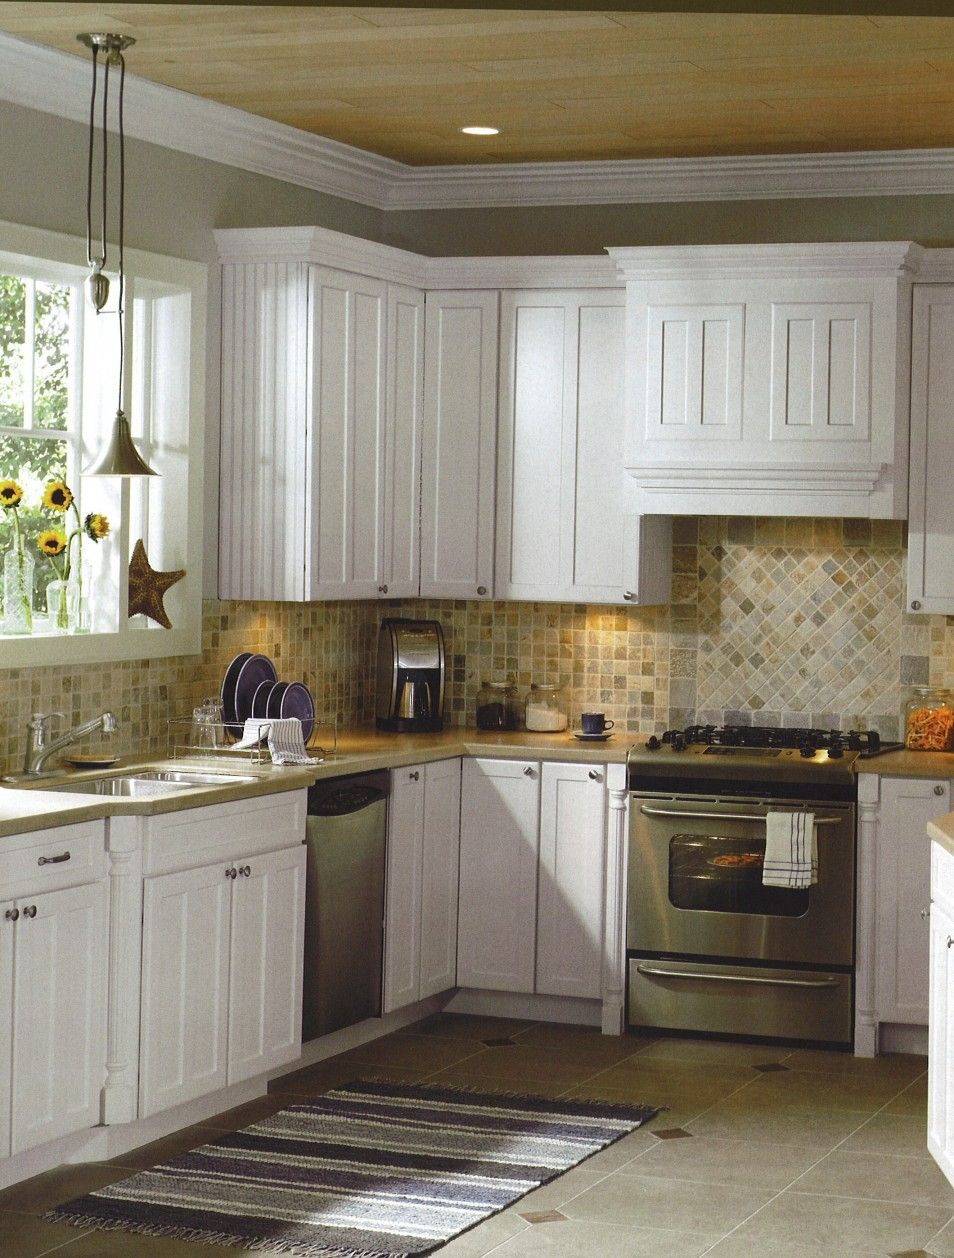 Modern Kitchen Design Ideas In Compact Kitchen Units And Cabinets ...